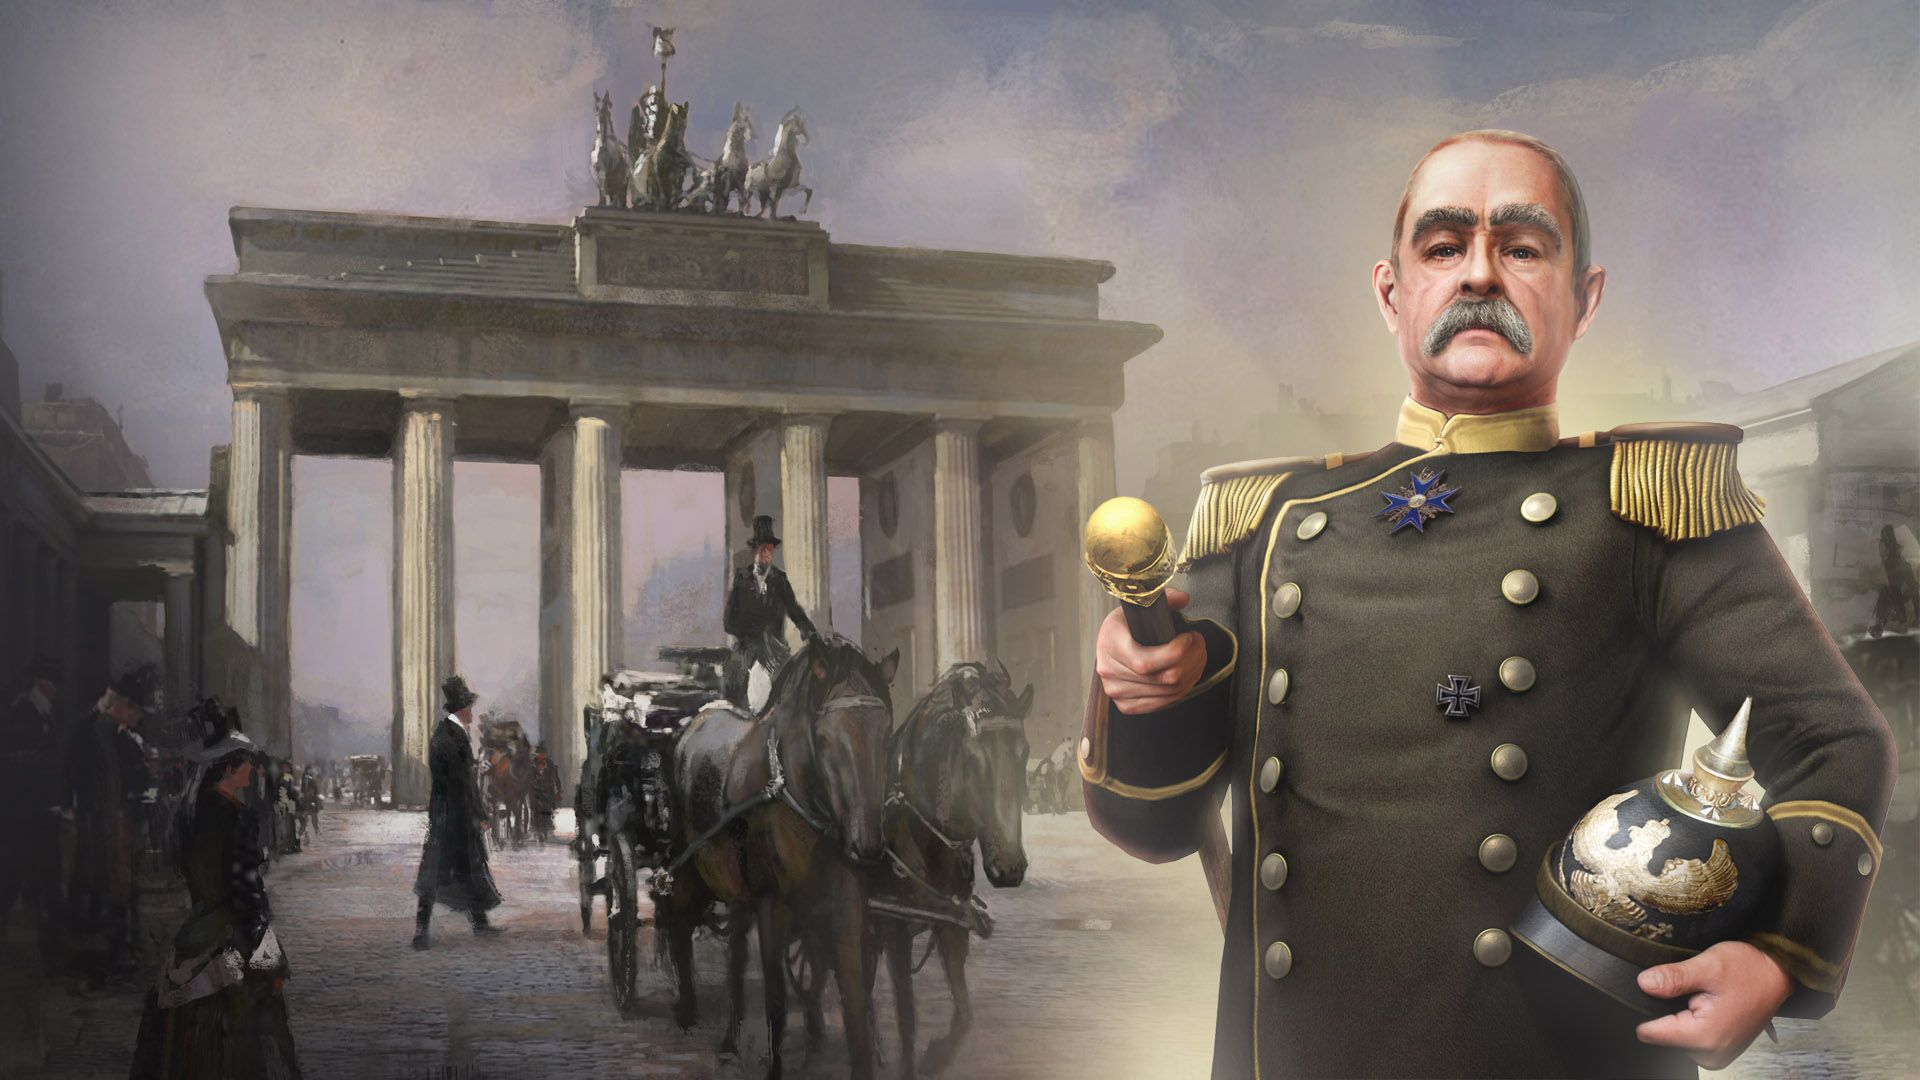 essay on otto von bismarck Otto von bismarck was born on april 1, 1815, at his family's estate of schoenhausen in prussia the same year, prussia became again the most important counread more here.